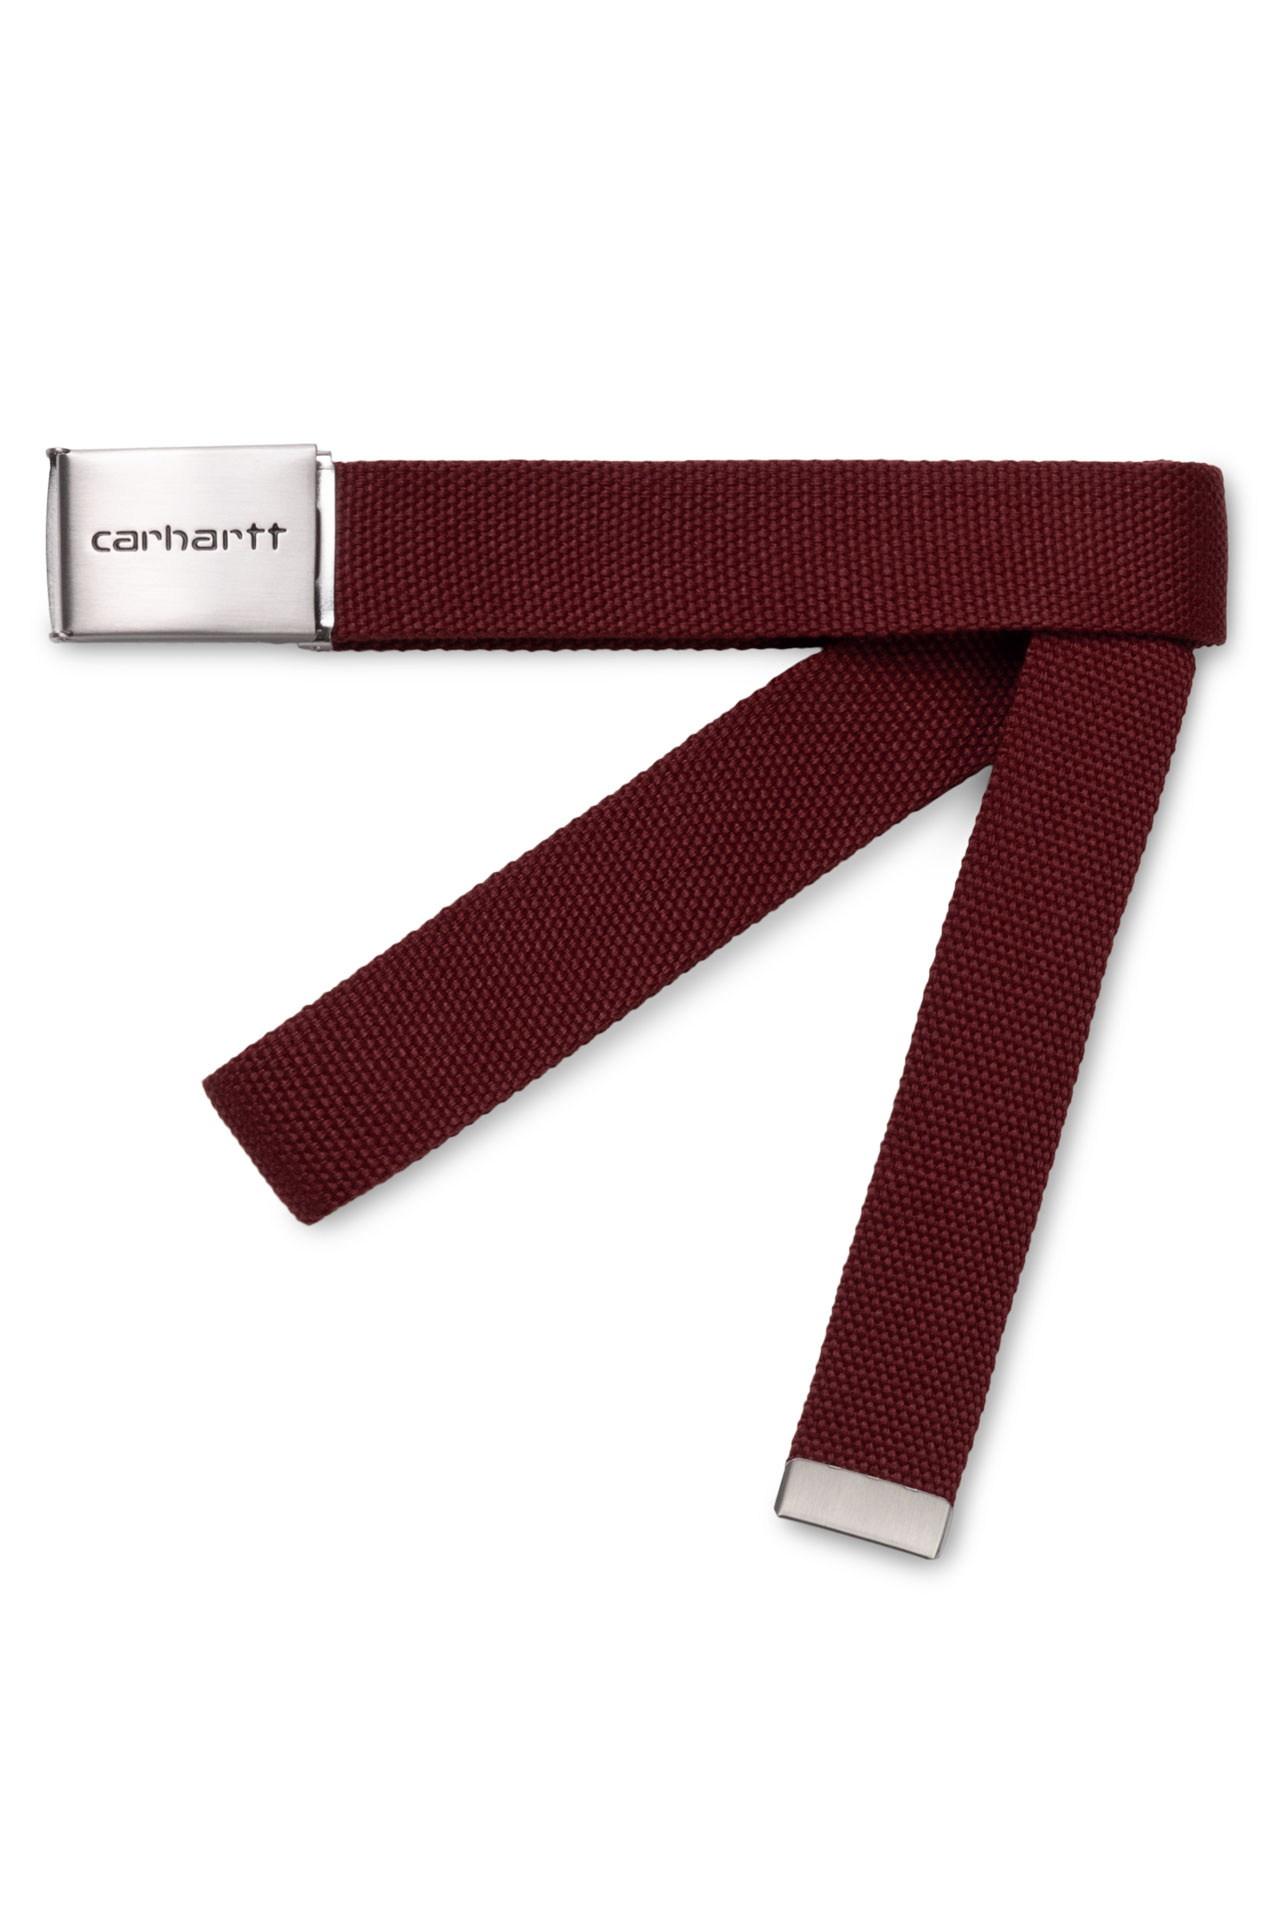 Foto van Carhartt Riem Clip Belt Chrome Bordeaux I019176